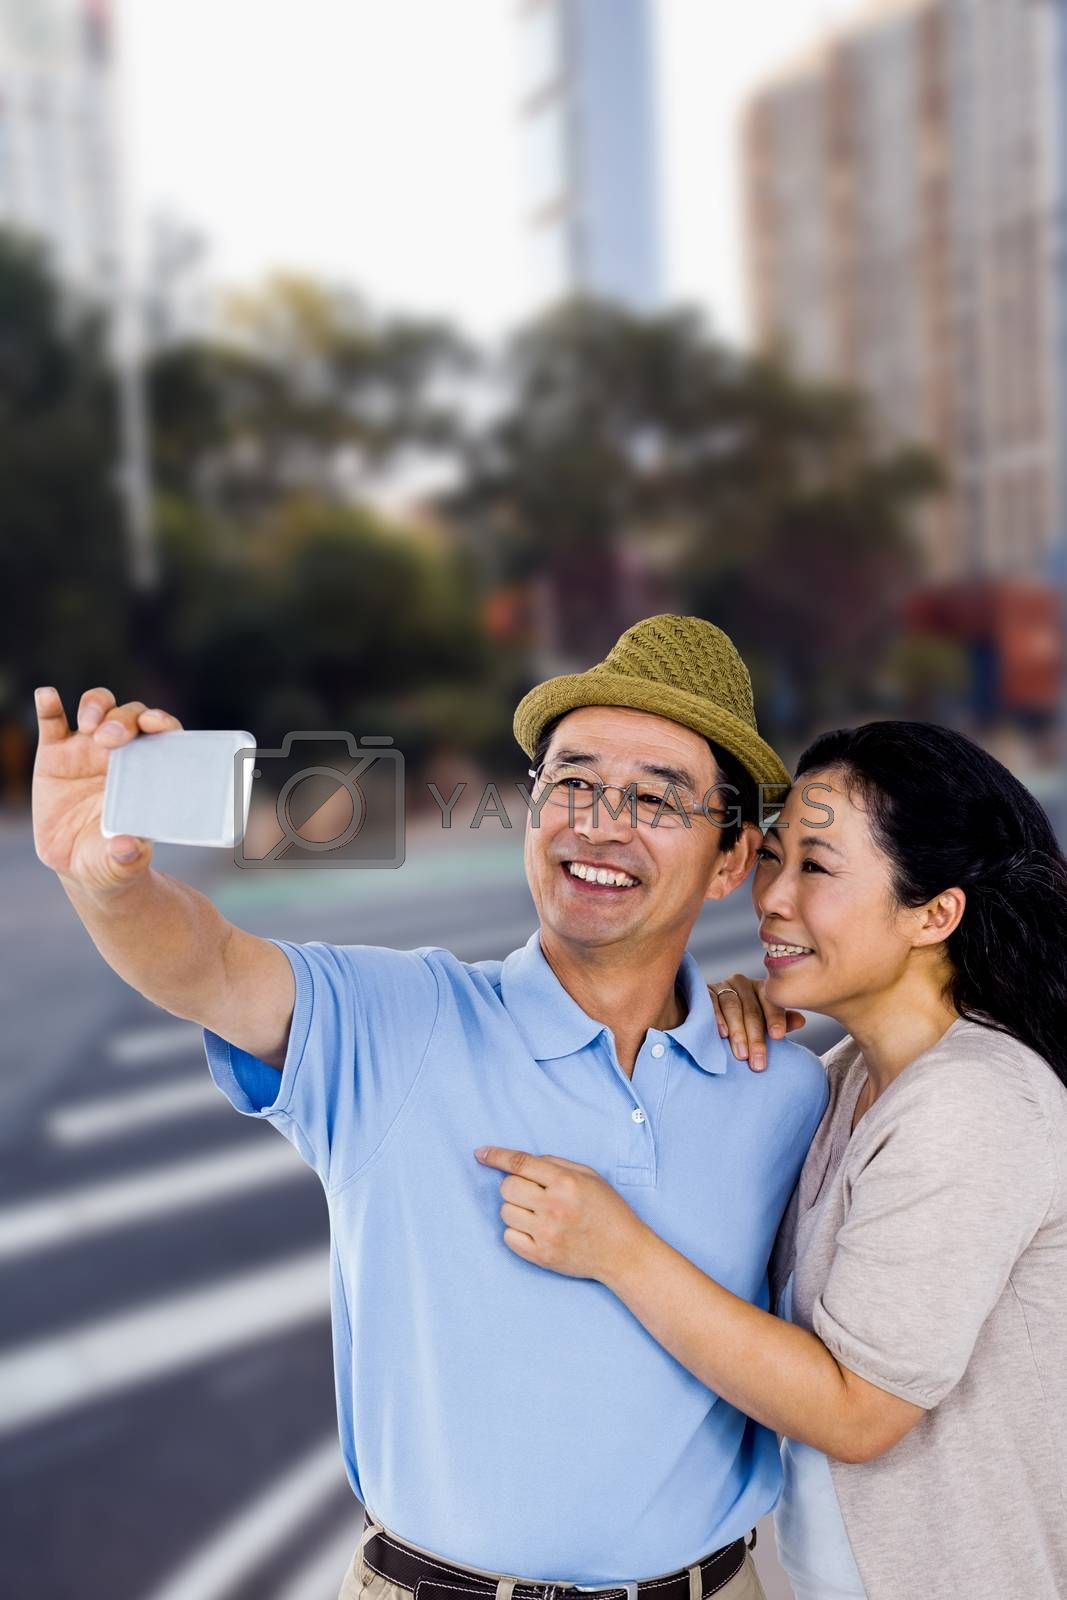 Man and woman taking a picture against new york street